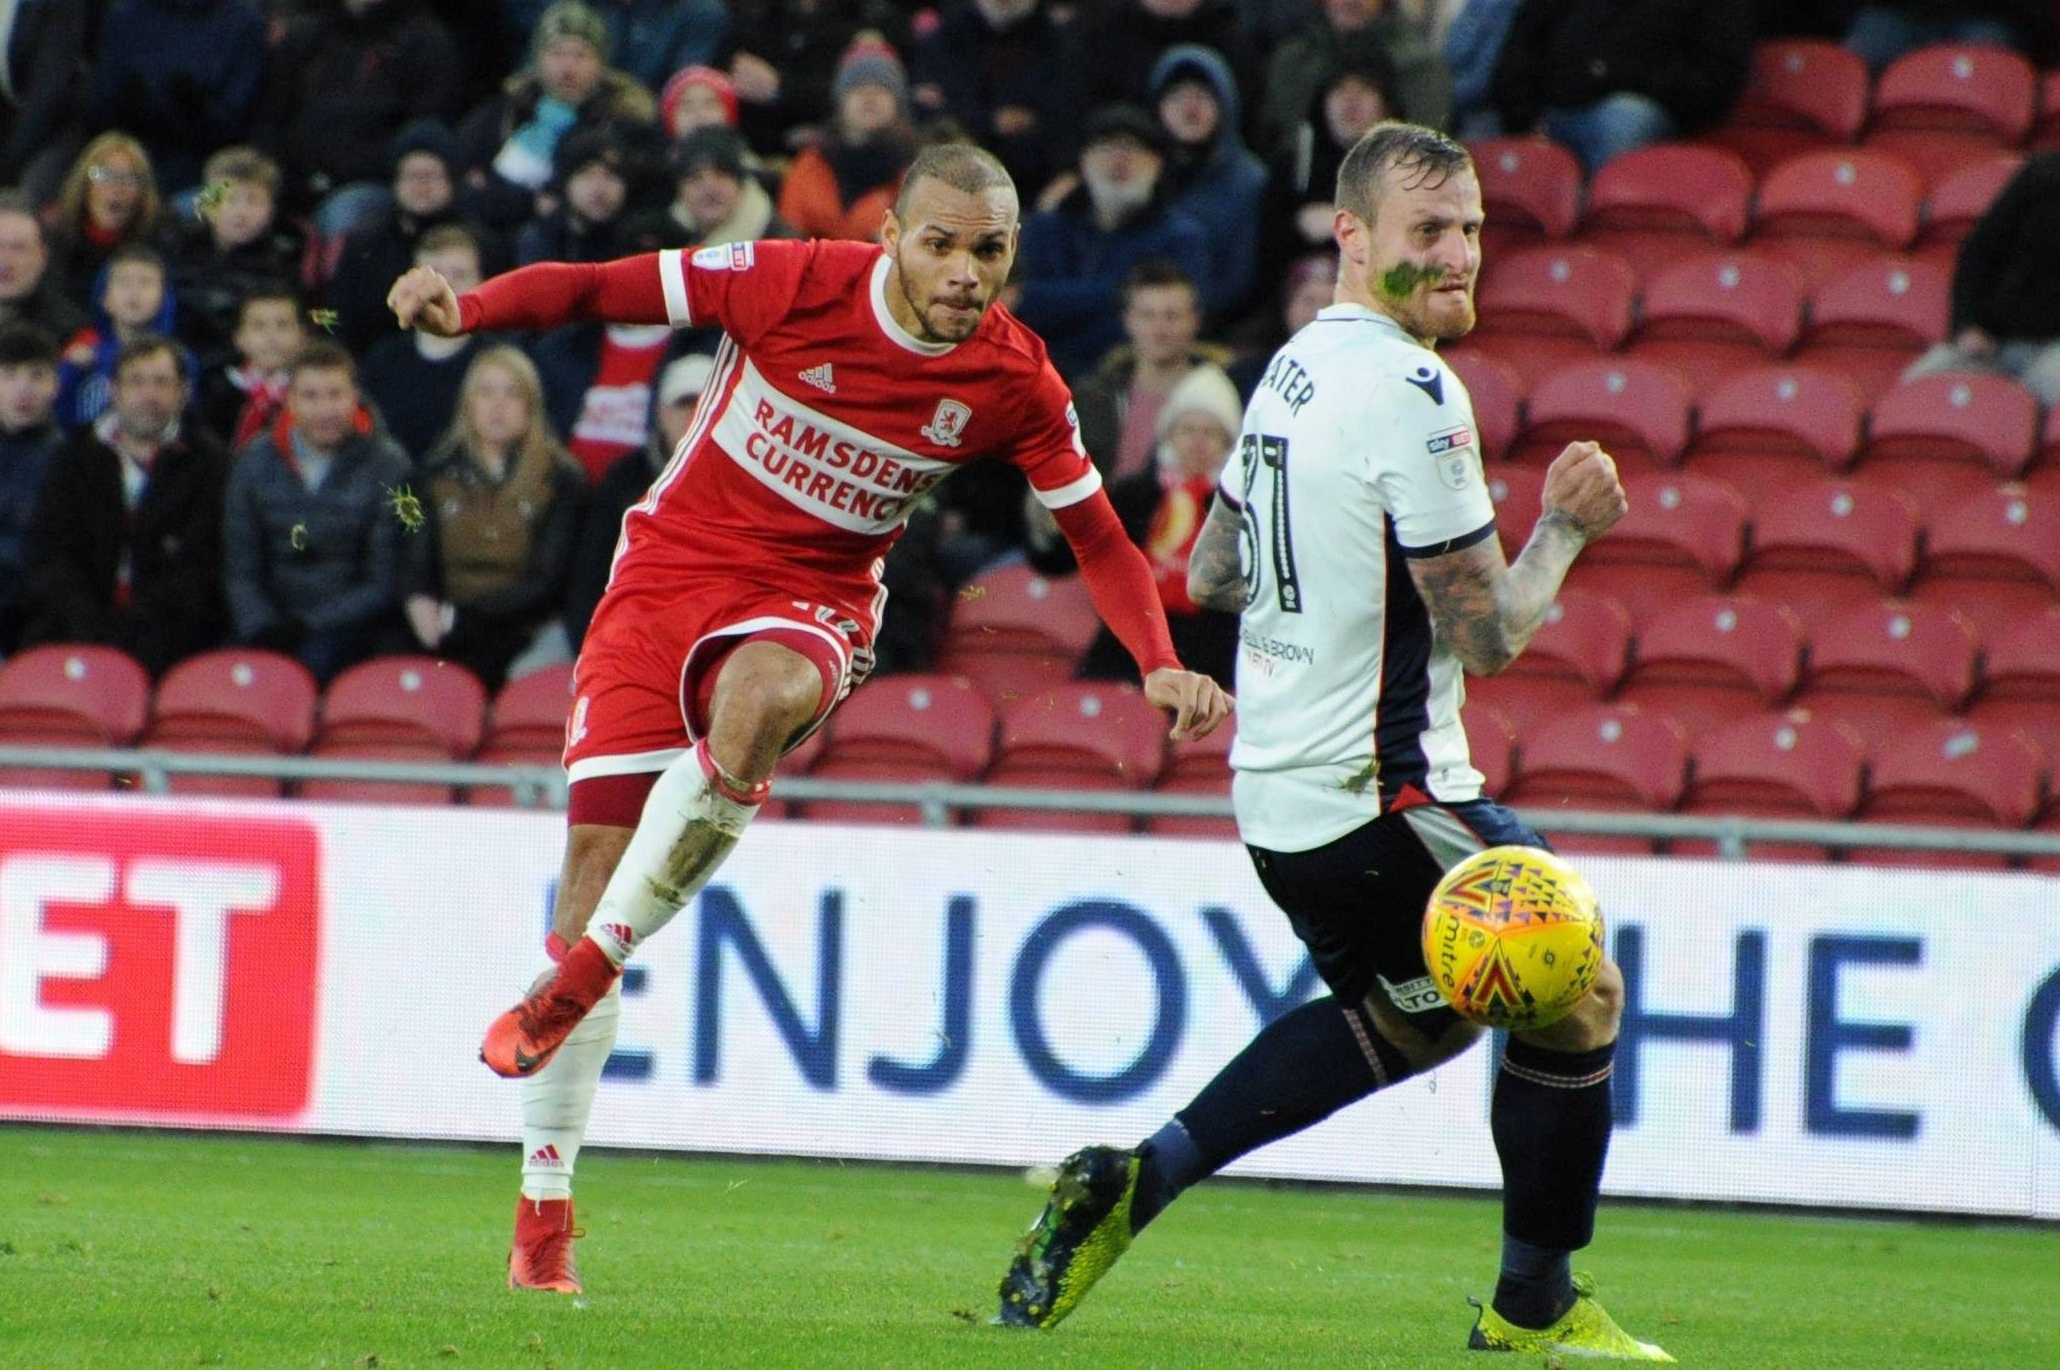 Braithwaite's Boro future in major doubt - with a January departure on the cards